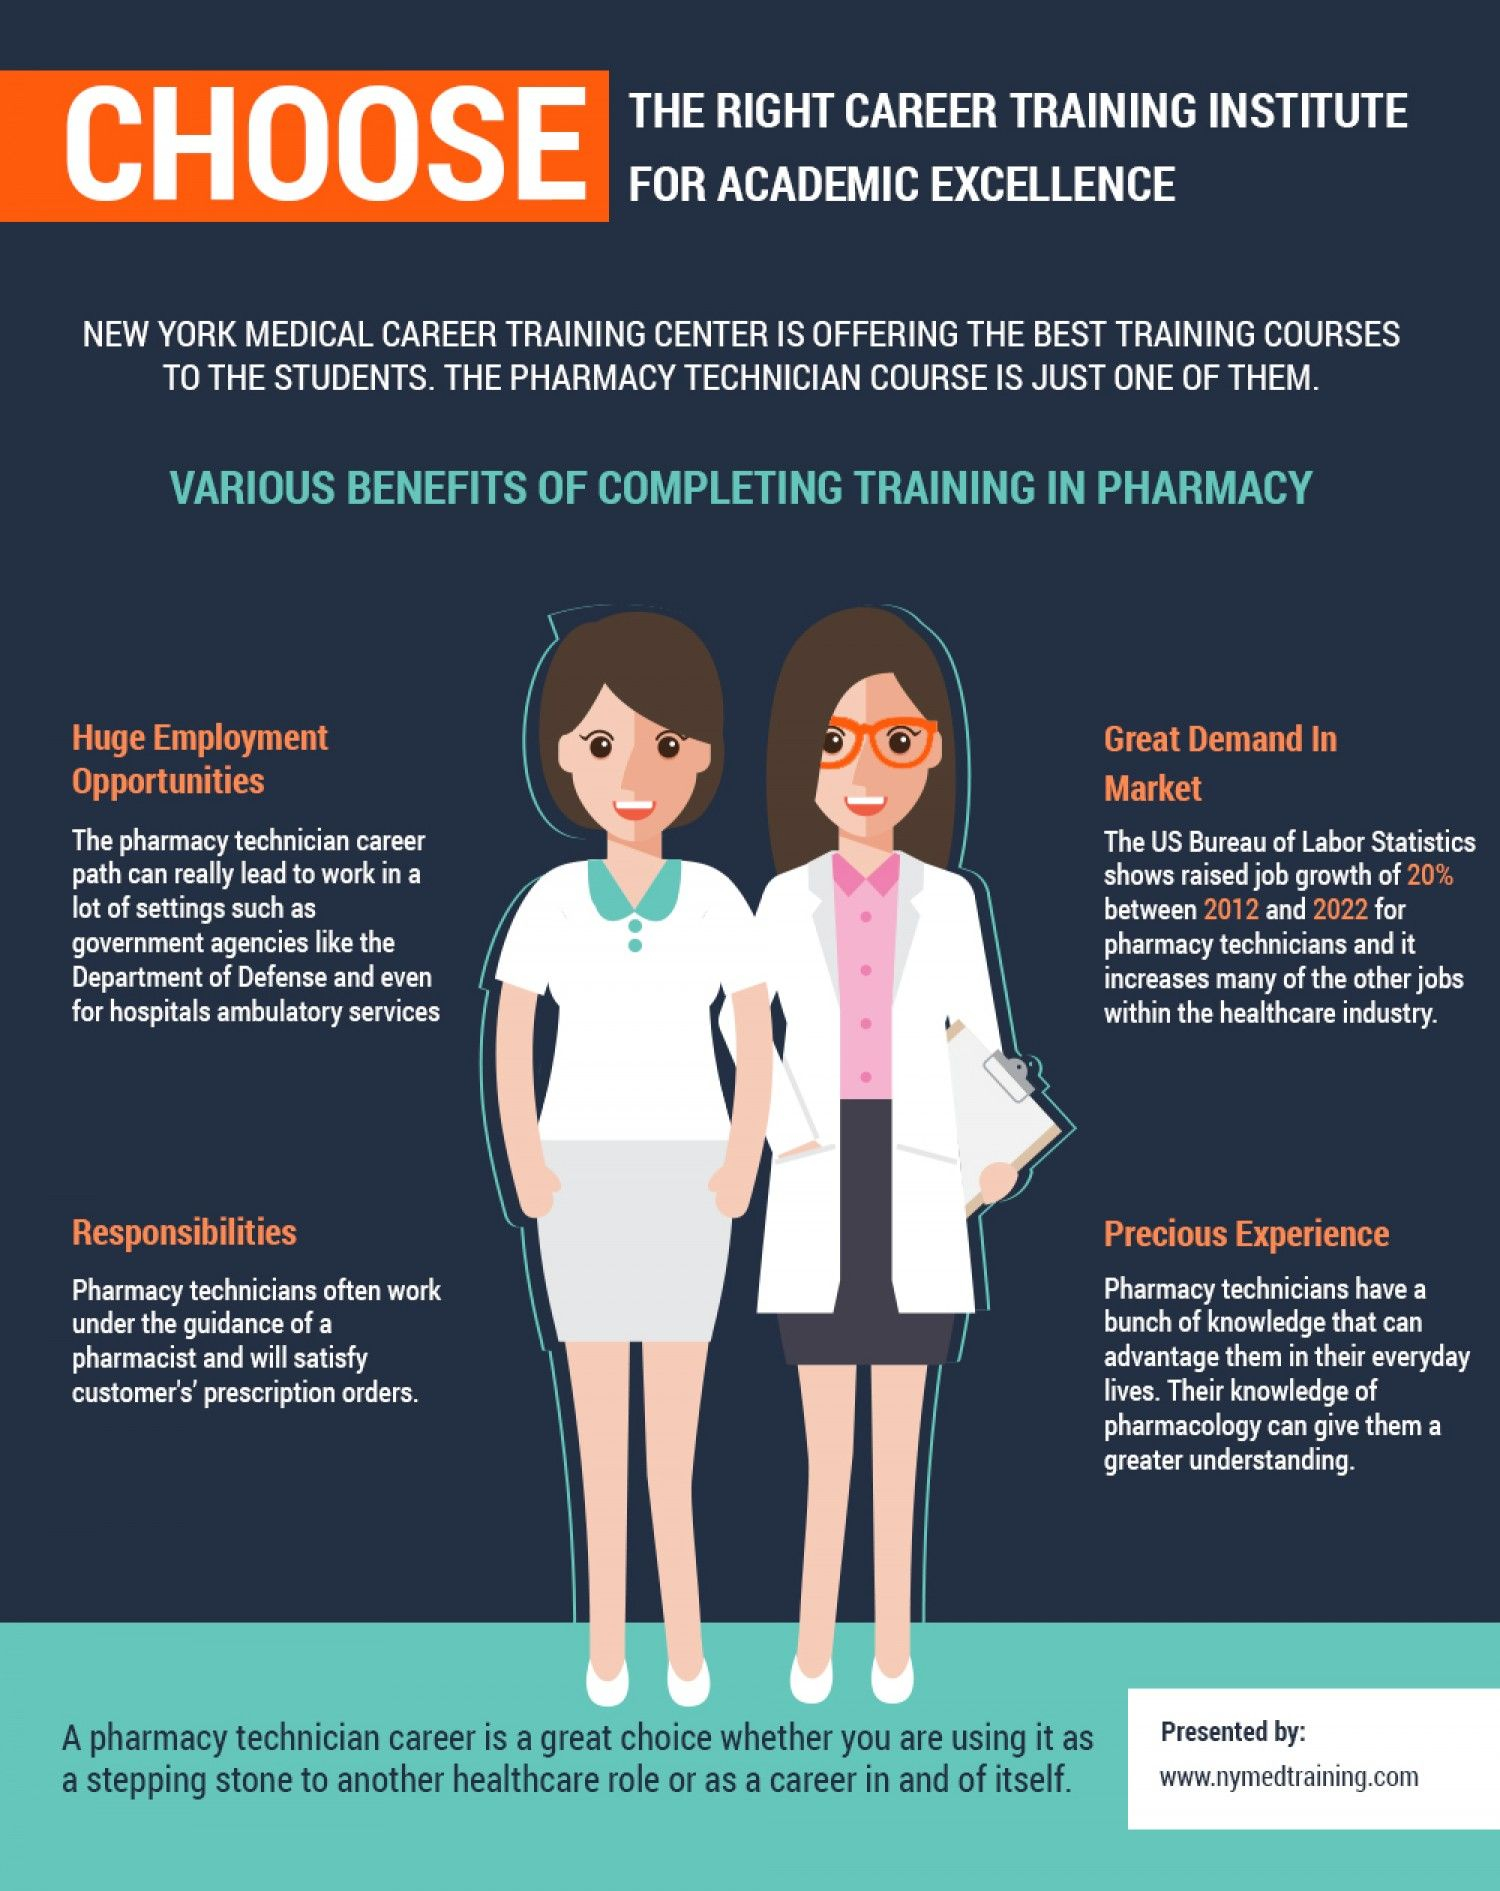 Making a career in the healthcare industry can provide you